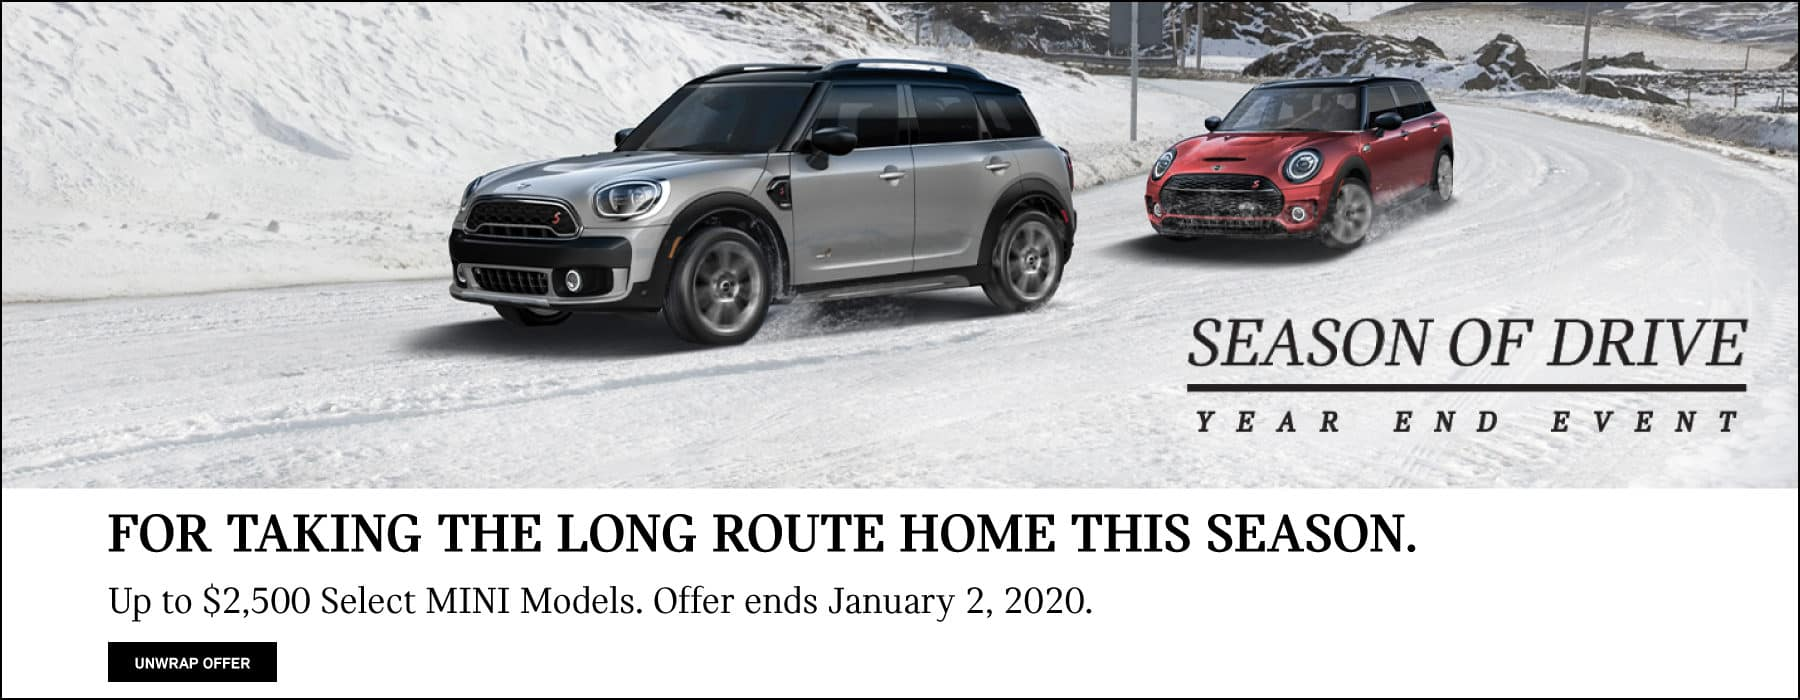 FOR TAKING THE LONG ROUTE HOME THIS SEASON. Up to $2,500 off Select MINI Models. Offer ends January 2, 2020. Click to unwrap offer.